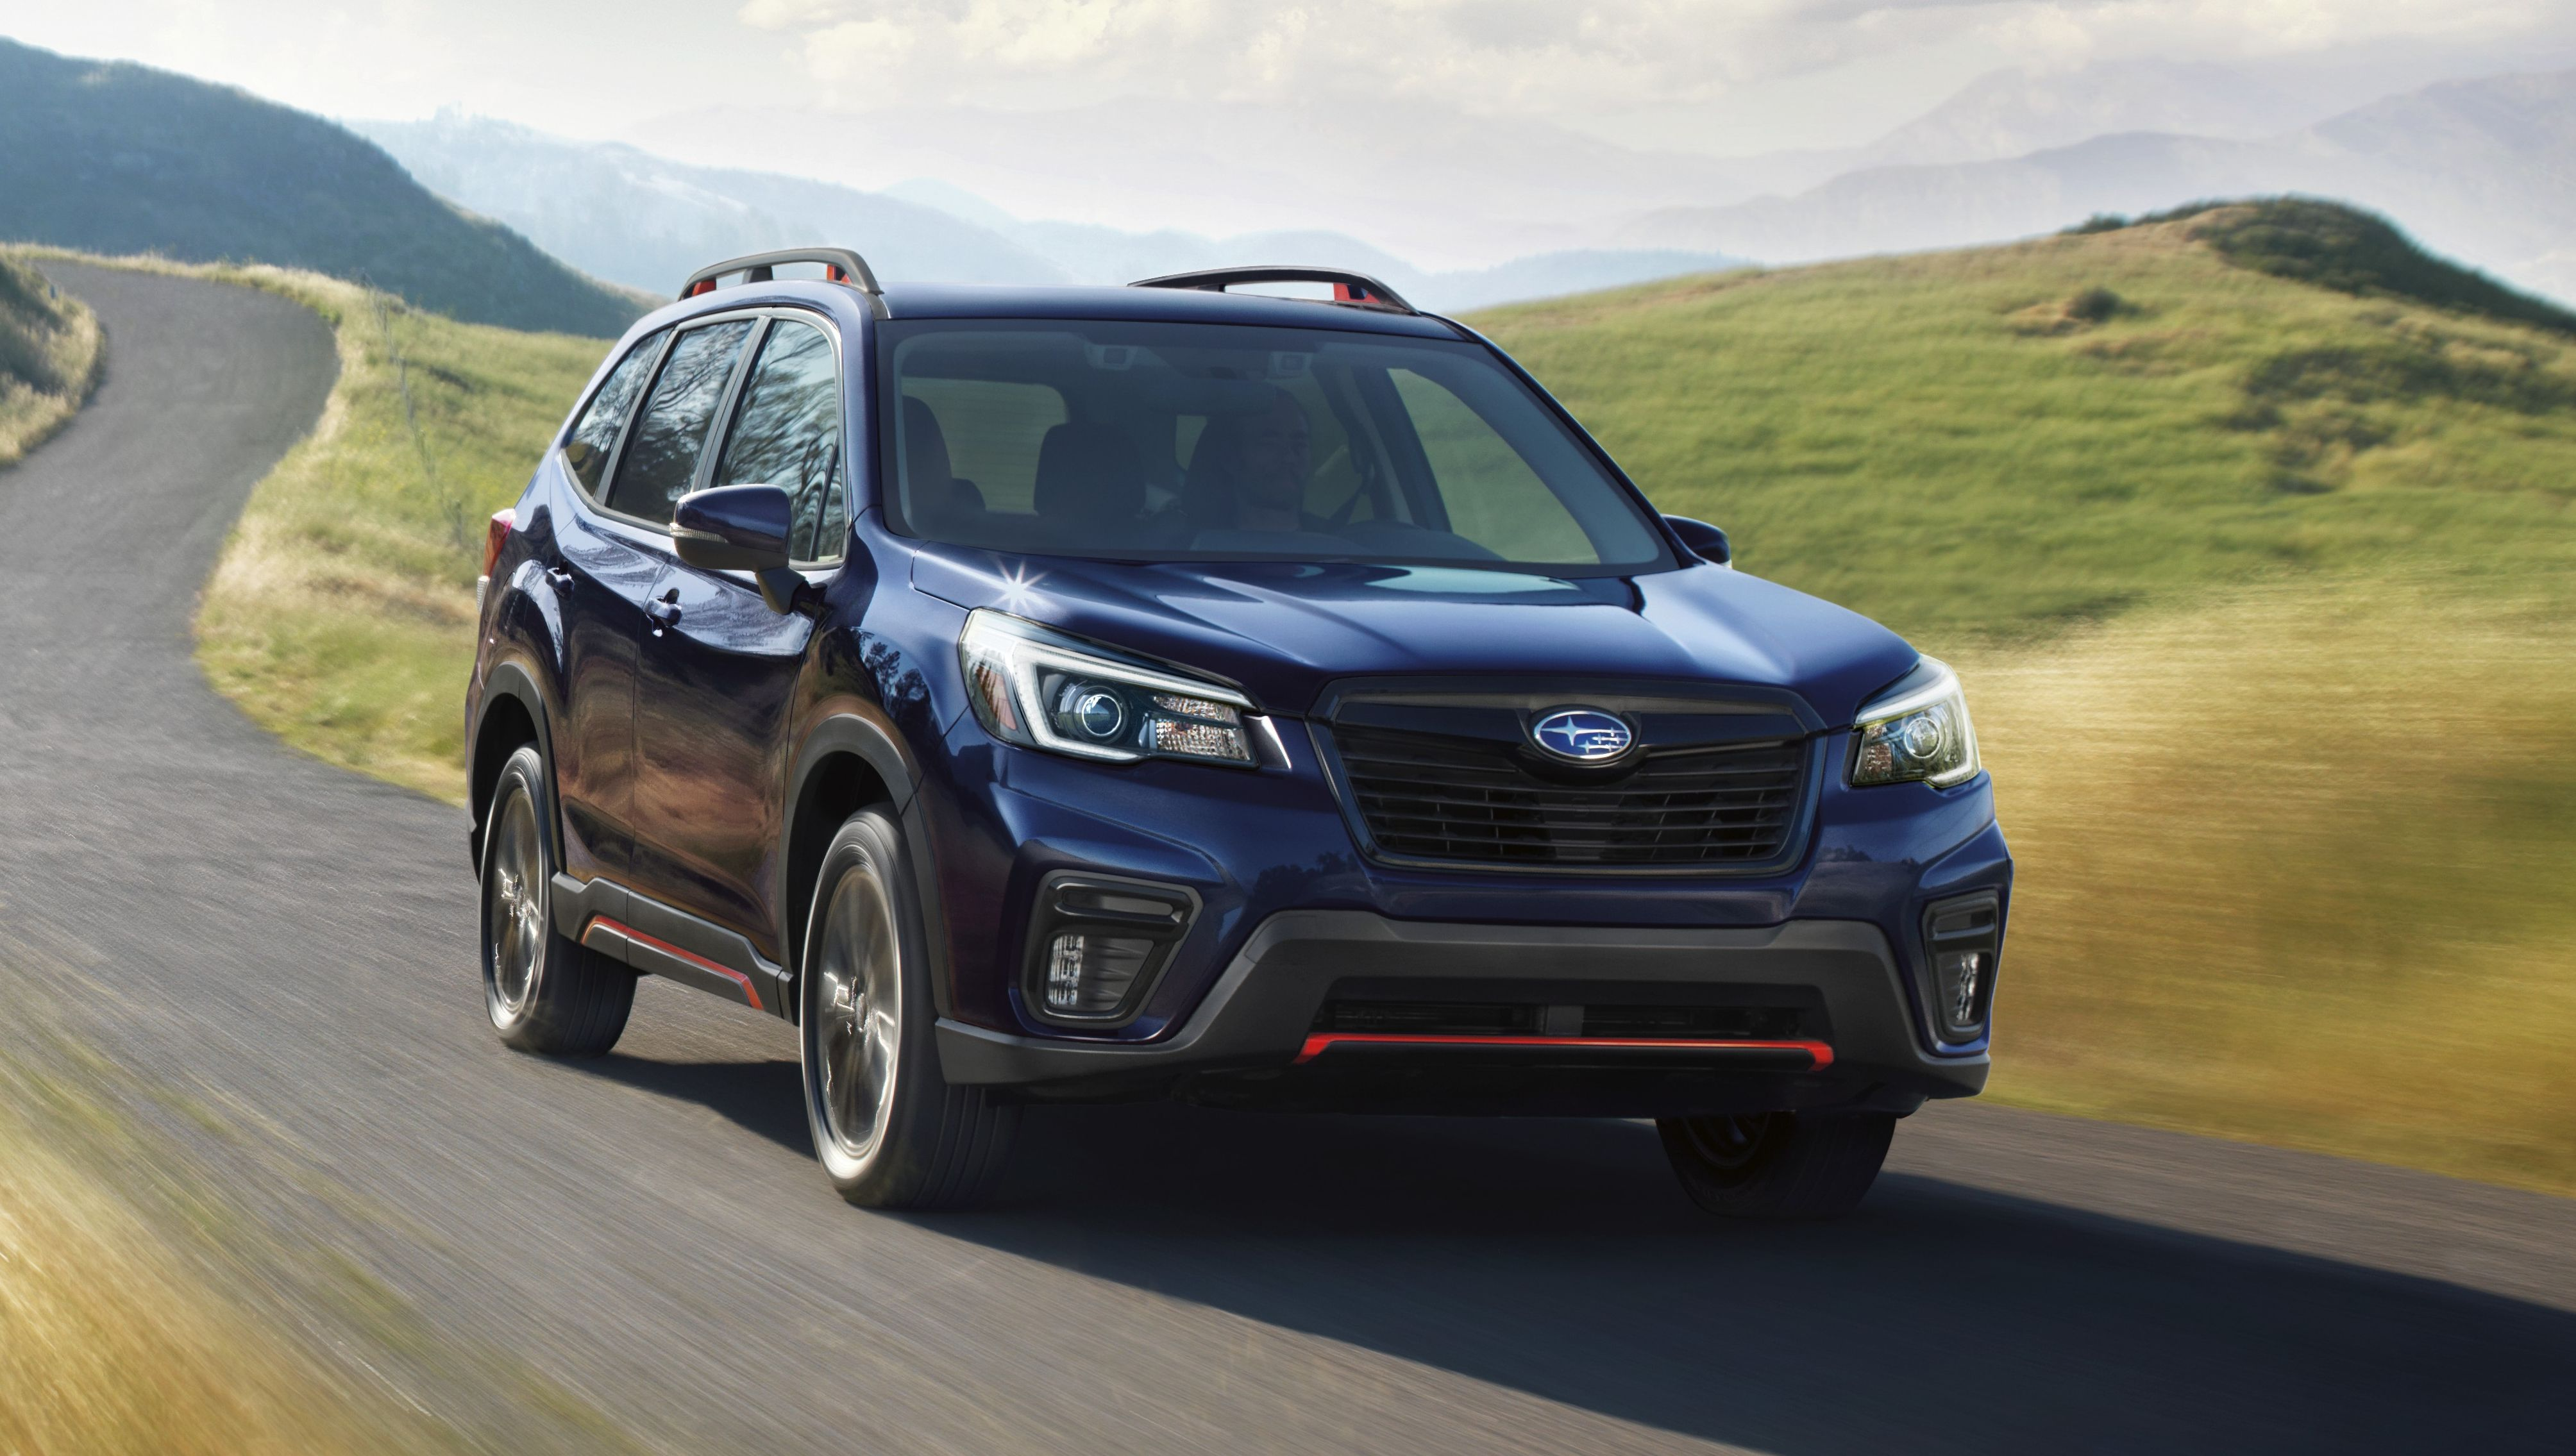 2021 Subaru Forester Buyer S Guide Price And Trim Levels Top Speed In 2020 Subaru Forester Subaru Latest Cars